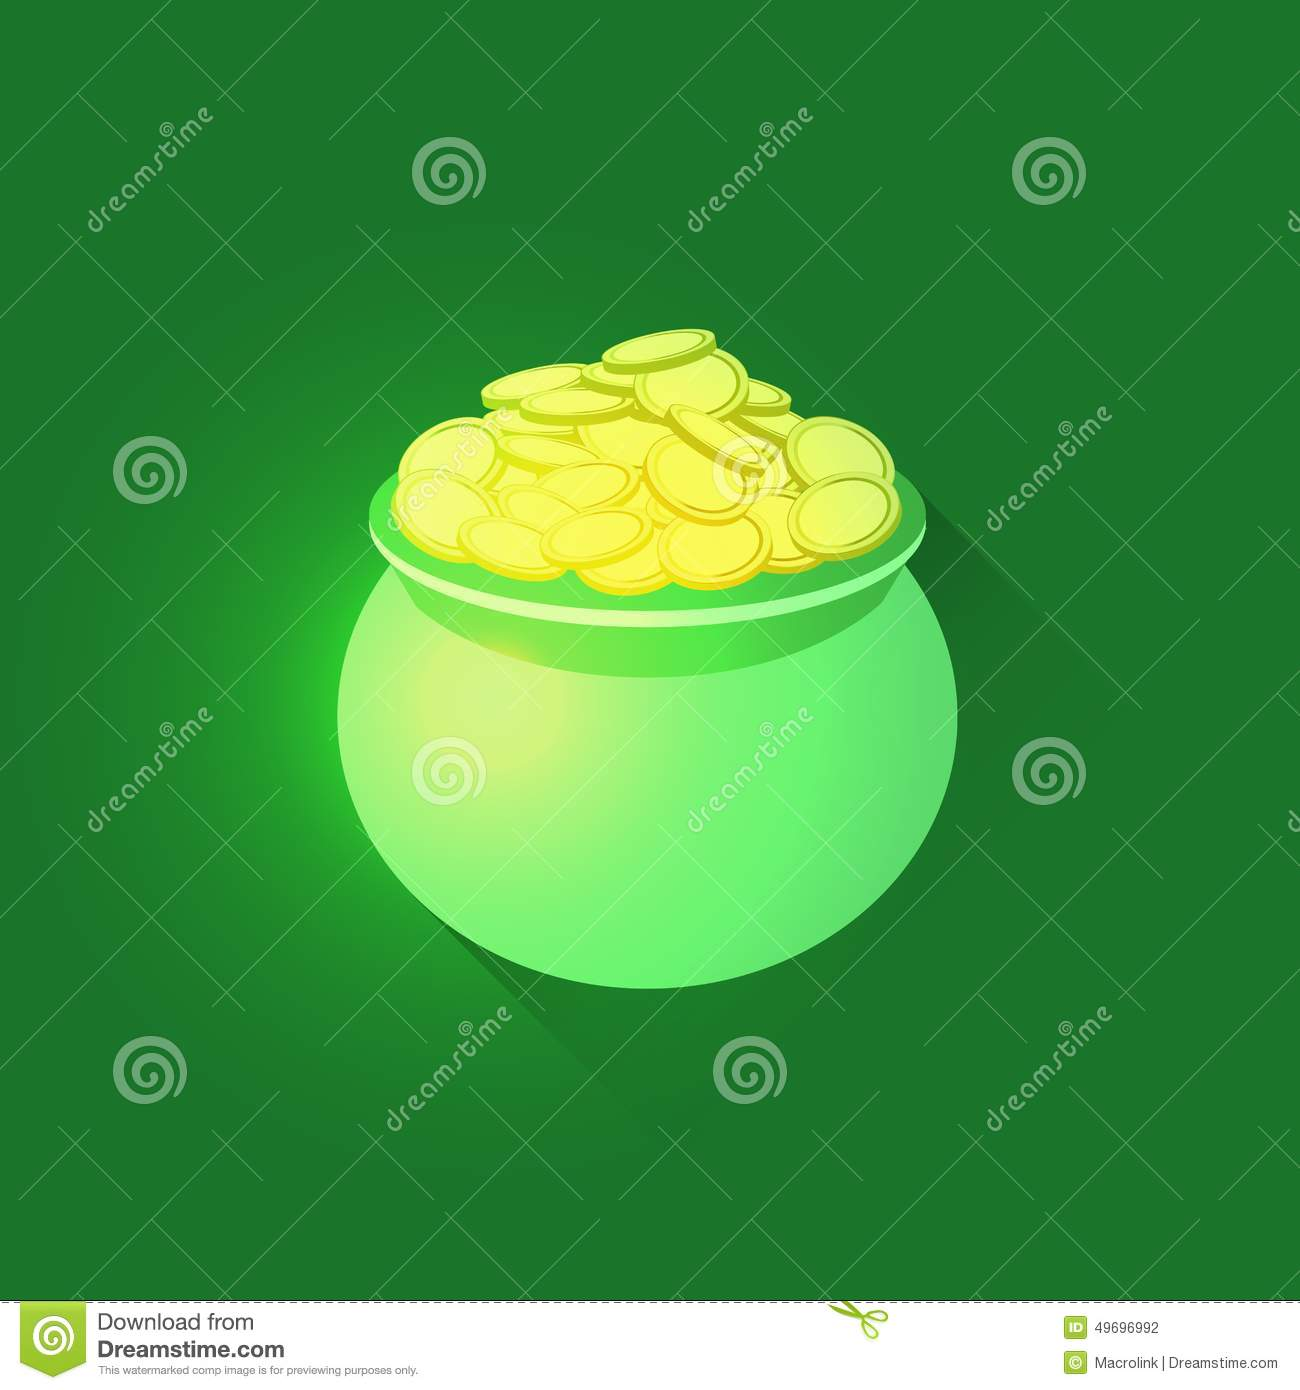 Download Pot full of gold coins stock vector. Illustration of clipart - 49696992